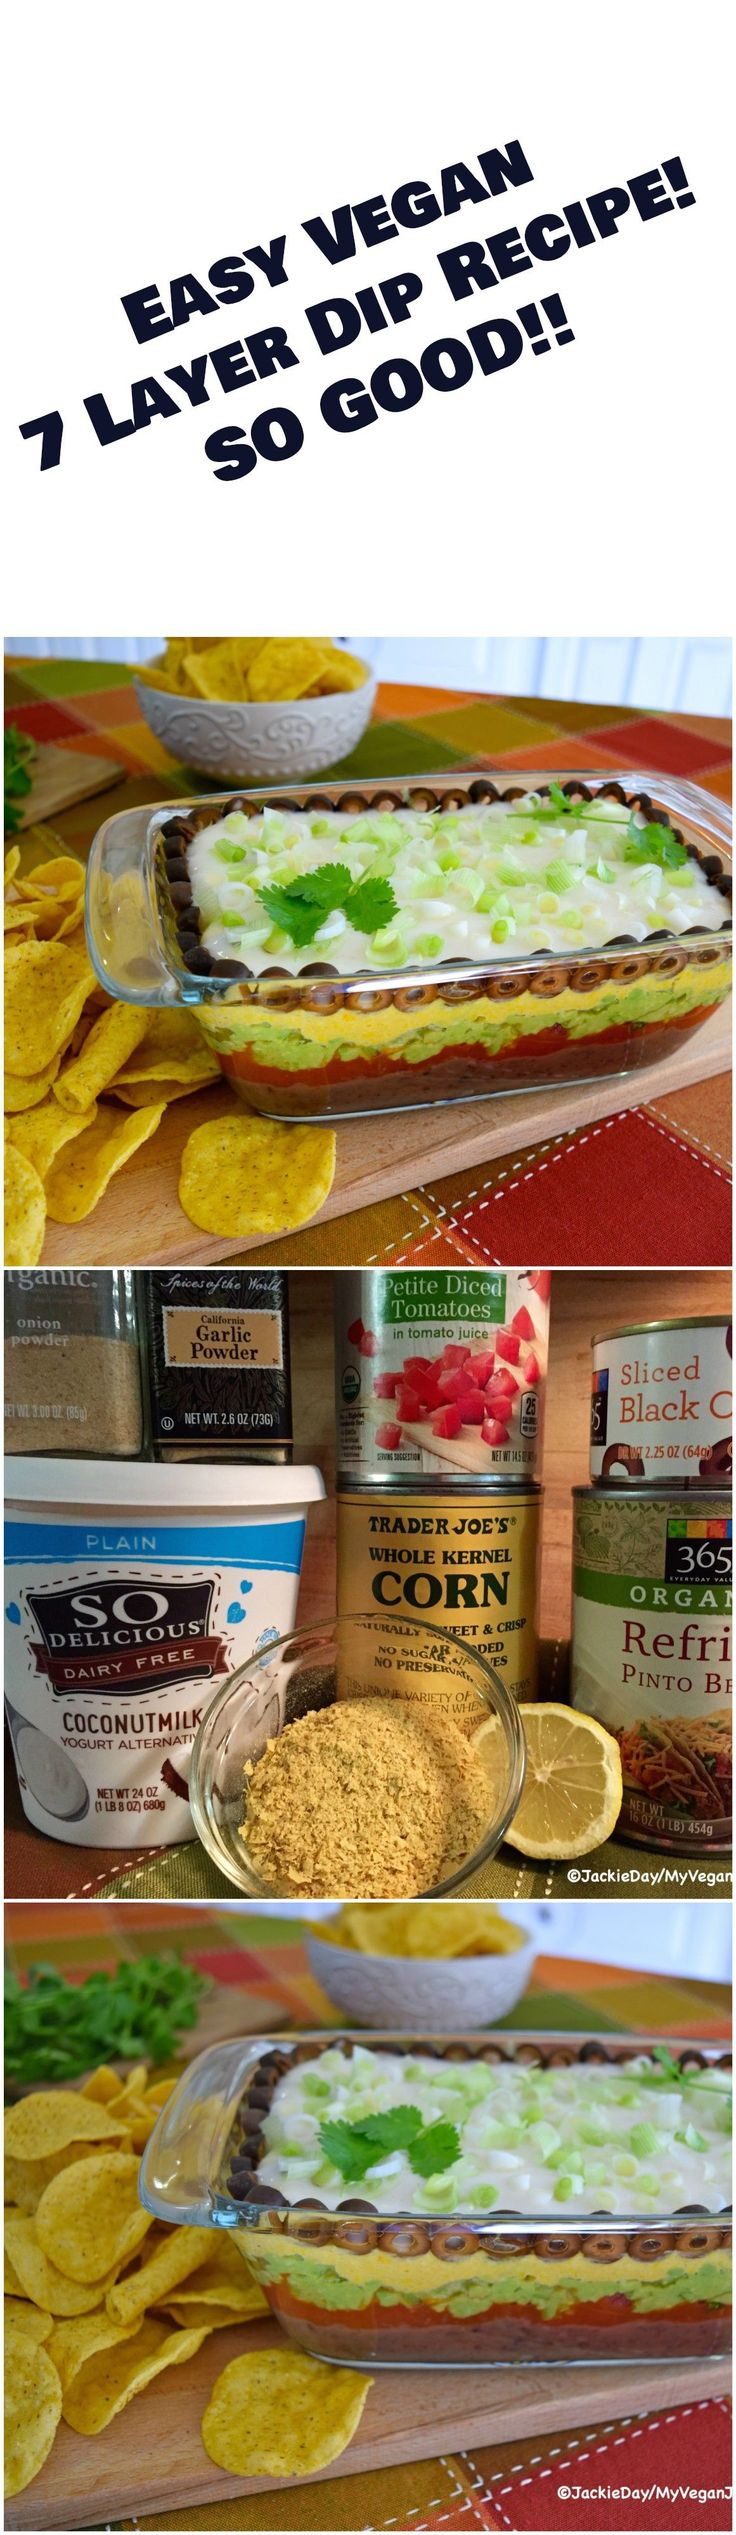 Easy Vegan 7 Layer Dip Recipe! Bring on the Chips!